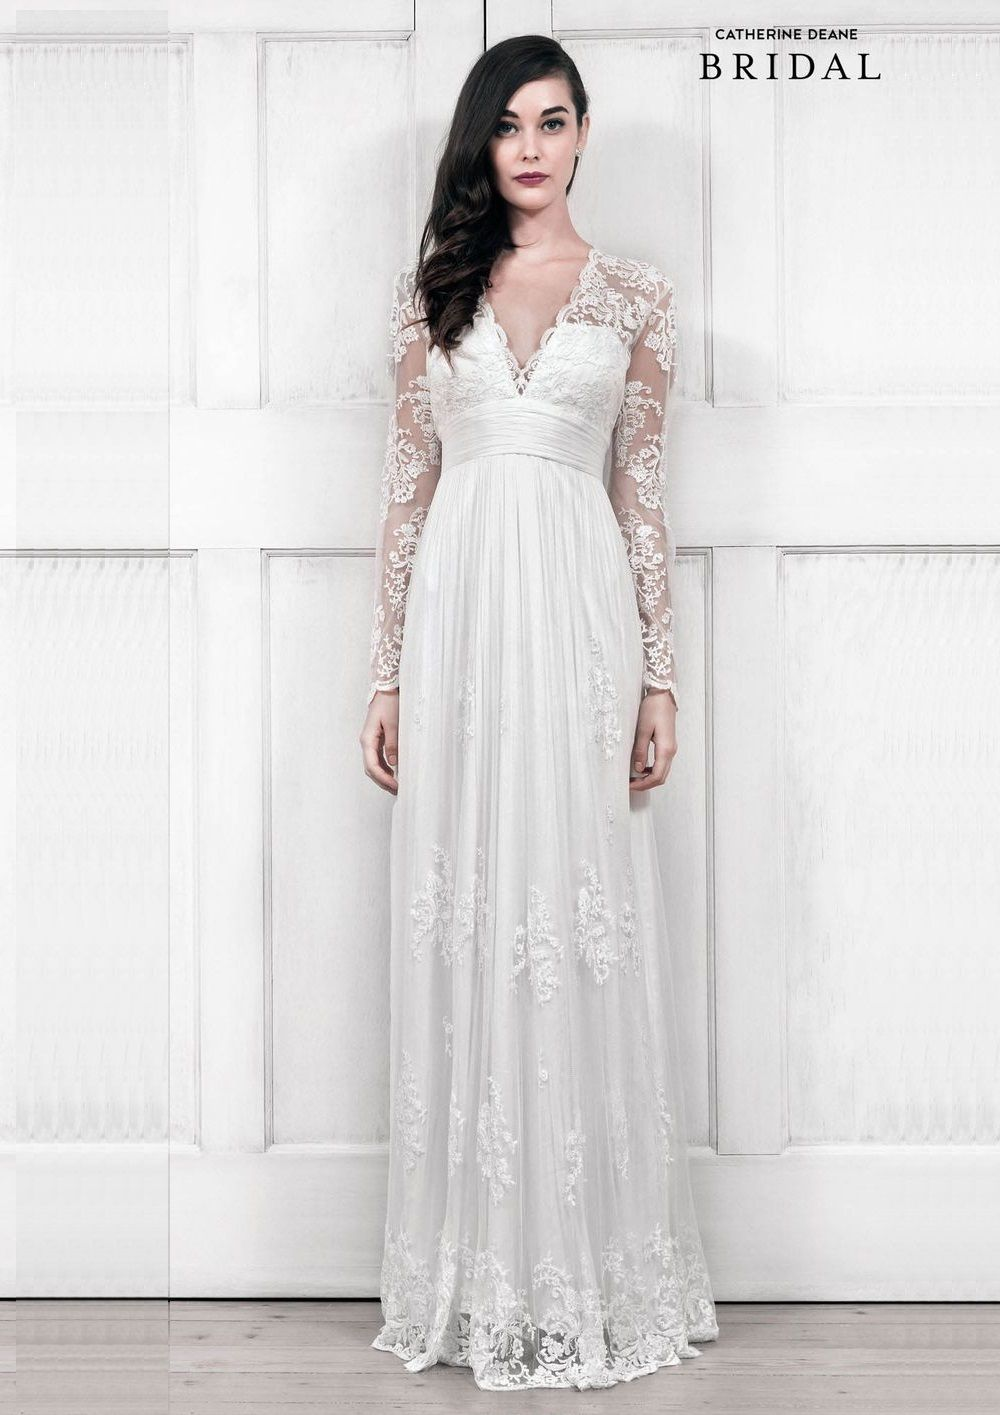 30 Exquisite & Elegant Long Sleeved Wedding Dresses | Pinterest ...